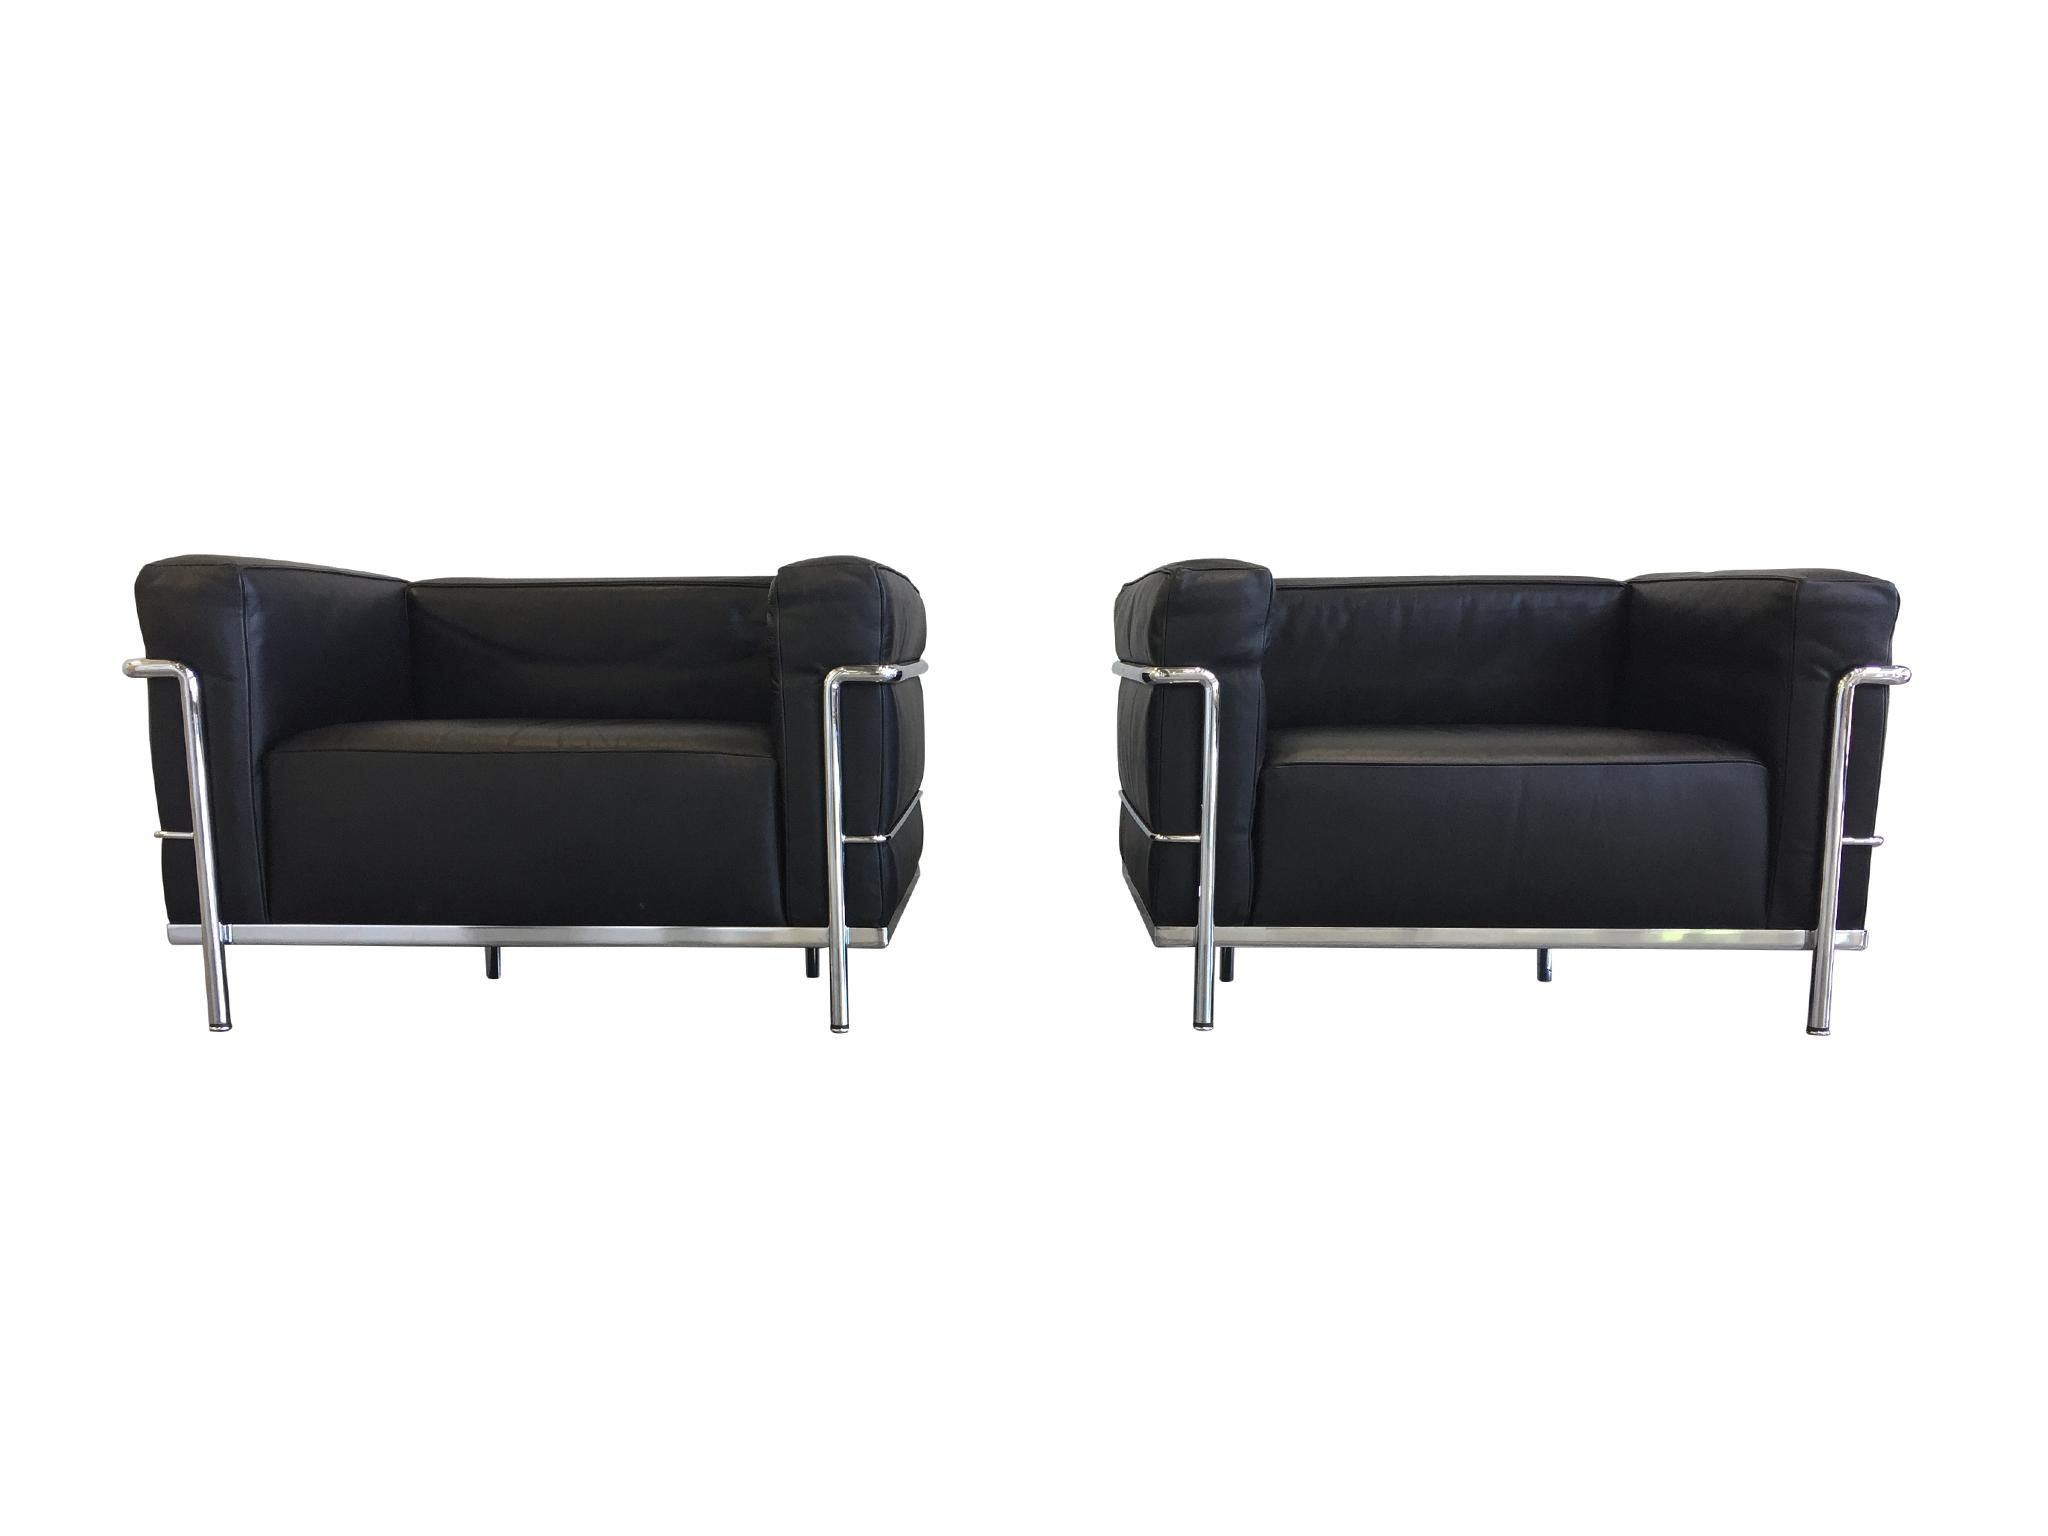 Cassina Le Corbusier Black Leather Sofa U0026 Club Chairs By Cassina, Signed  For Sale